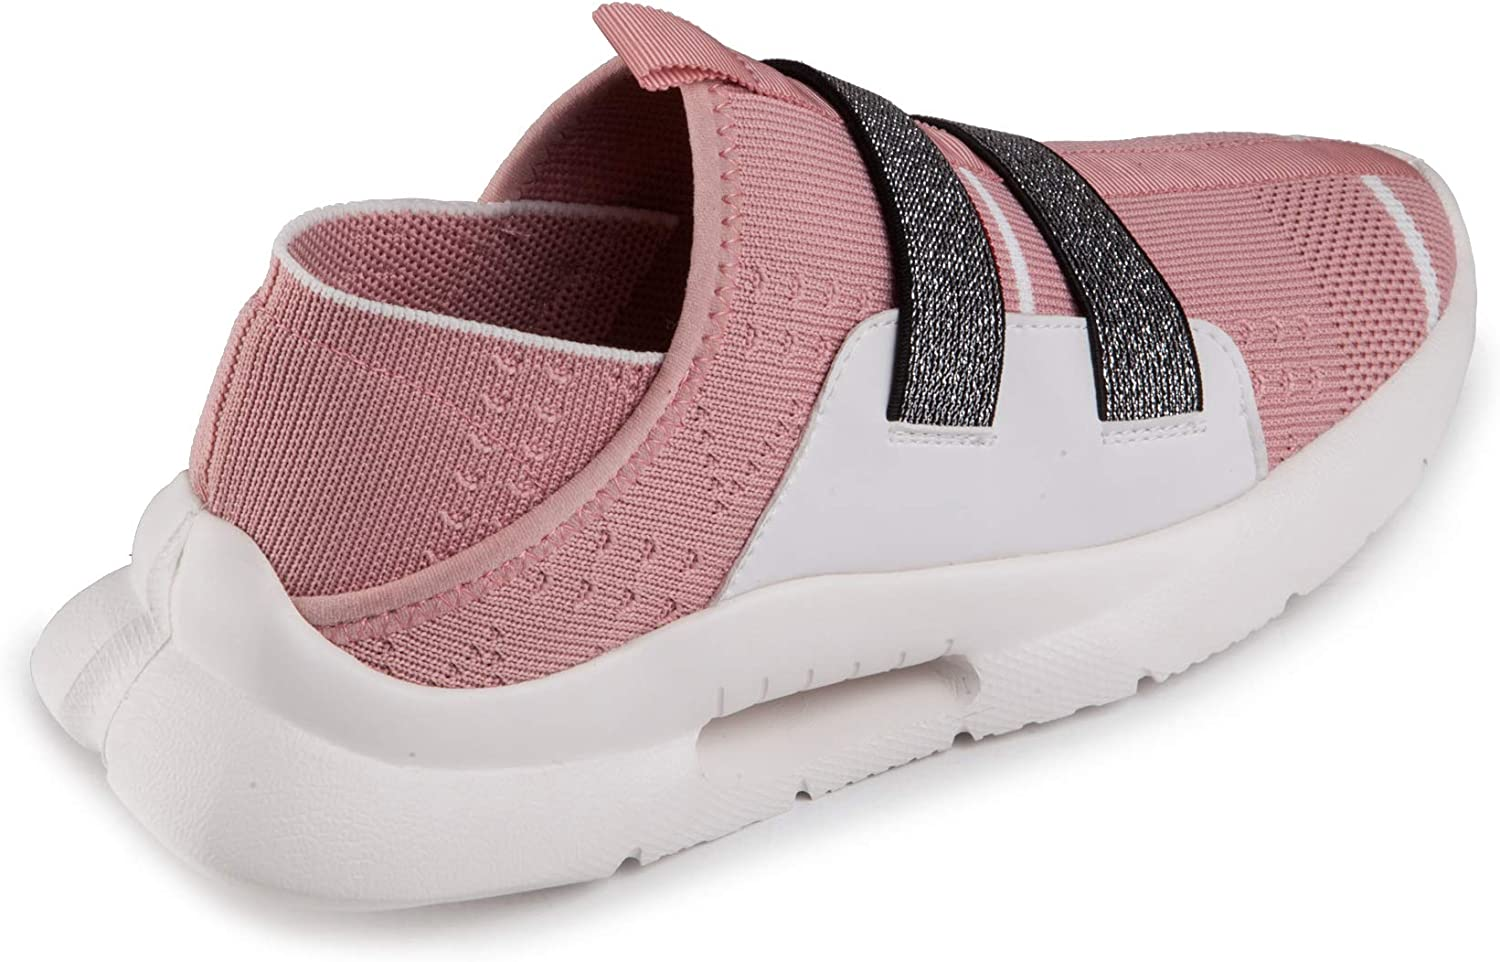 Baldi Women's Spook Navy/Pink Athletic Sport Shoes Casual Comfy Sport Slip on Sneakers wear with Jeans, Shorts, Skirts Pink